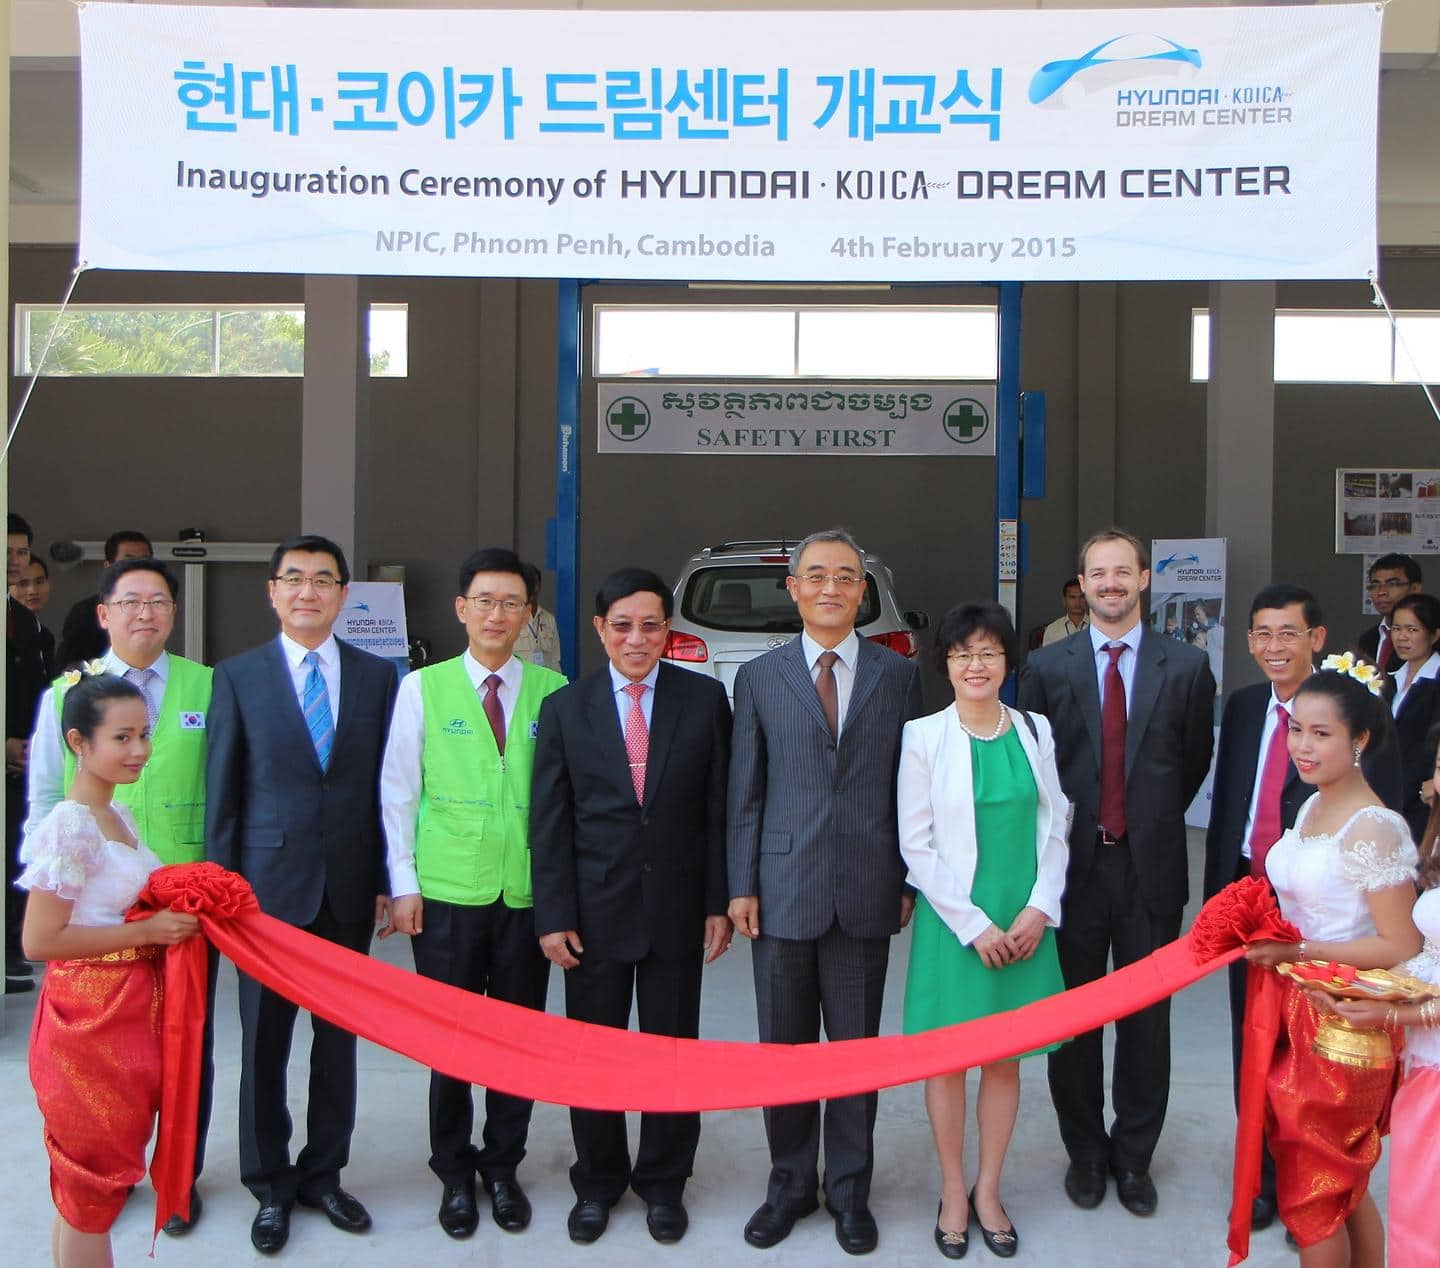 An inauguration ceremony of the Hyundai-KOICA Dream Center in Cambodia